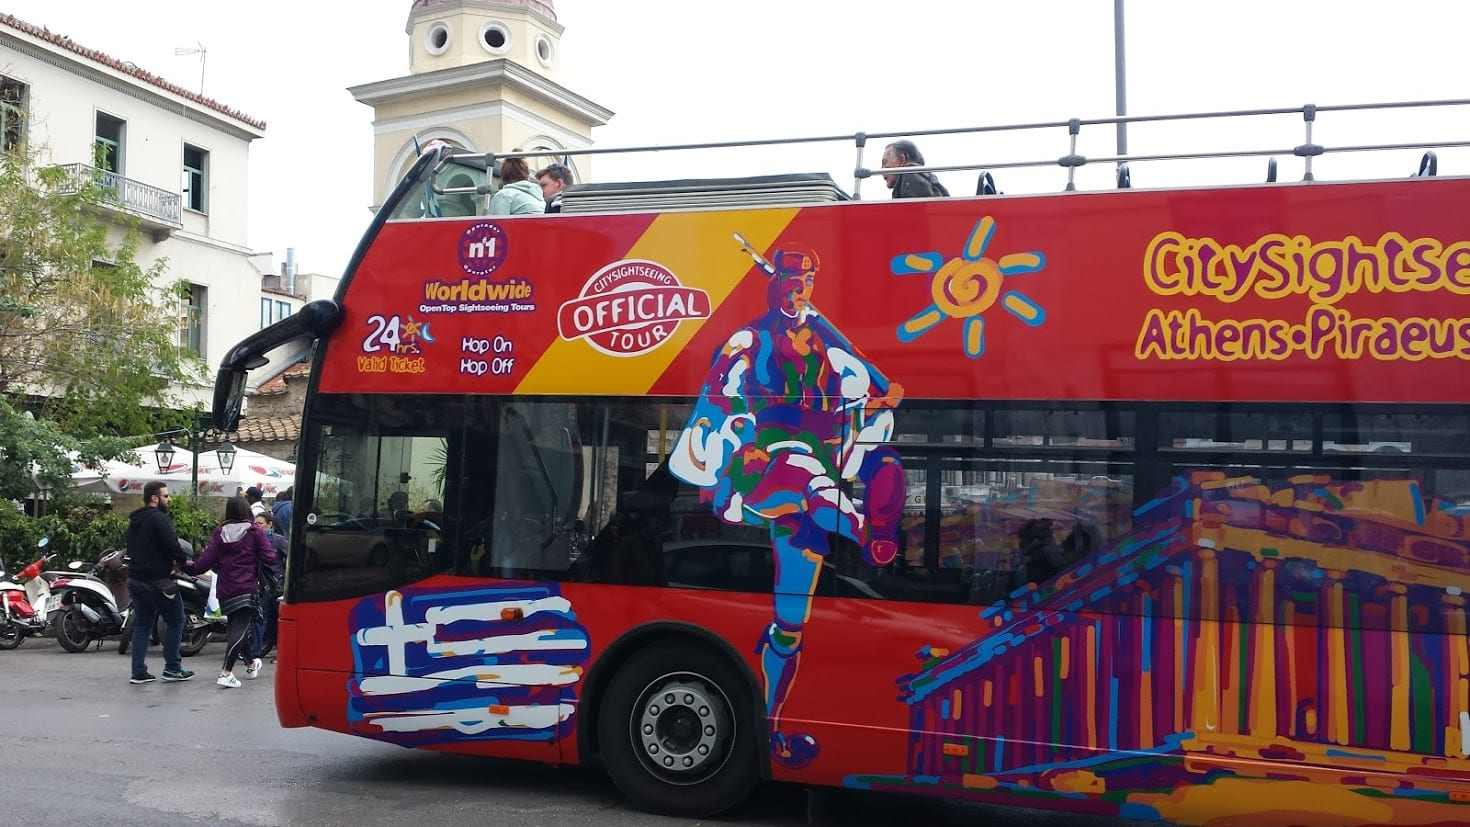 The hop on hop off bus in Athens, Greece